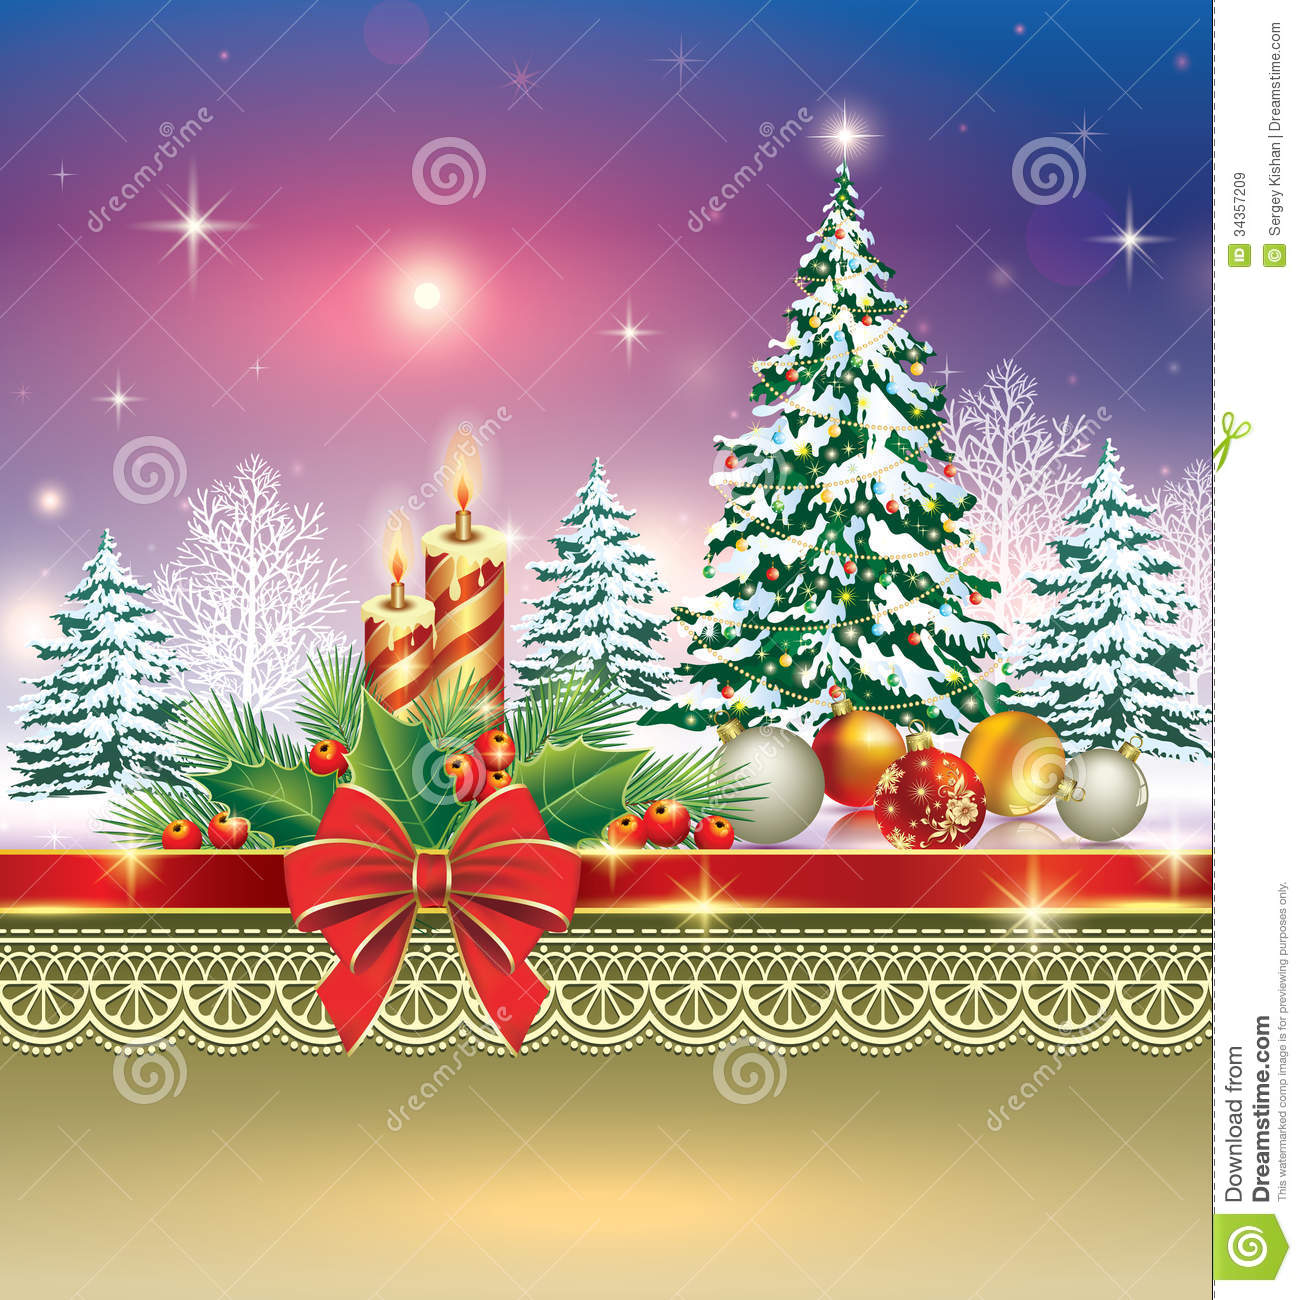 Christmas Card With Christmas Tree And Candles Stock